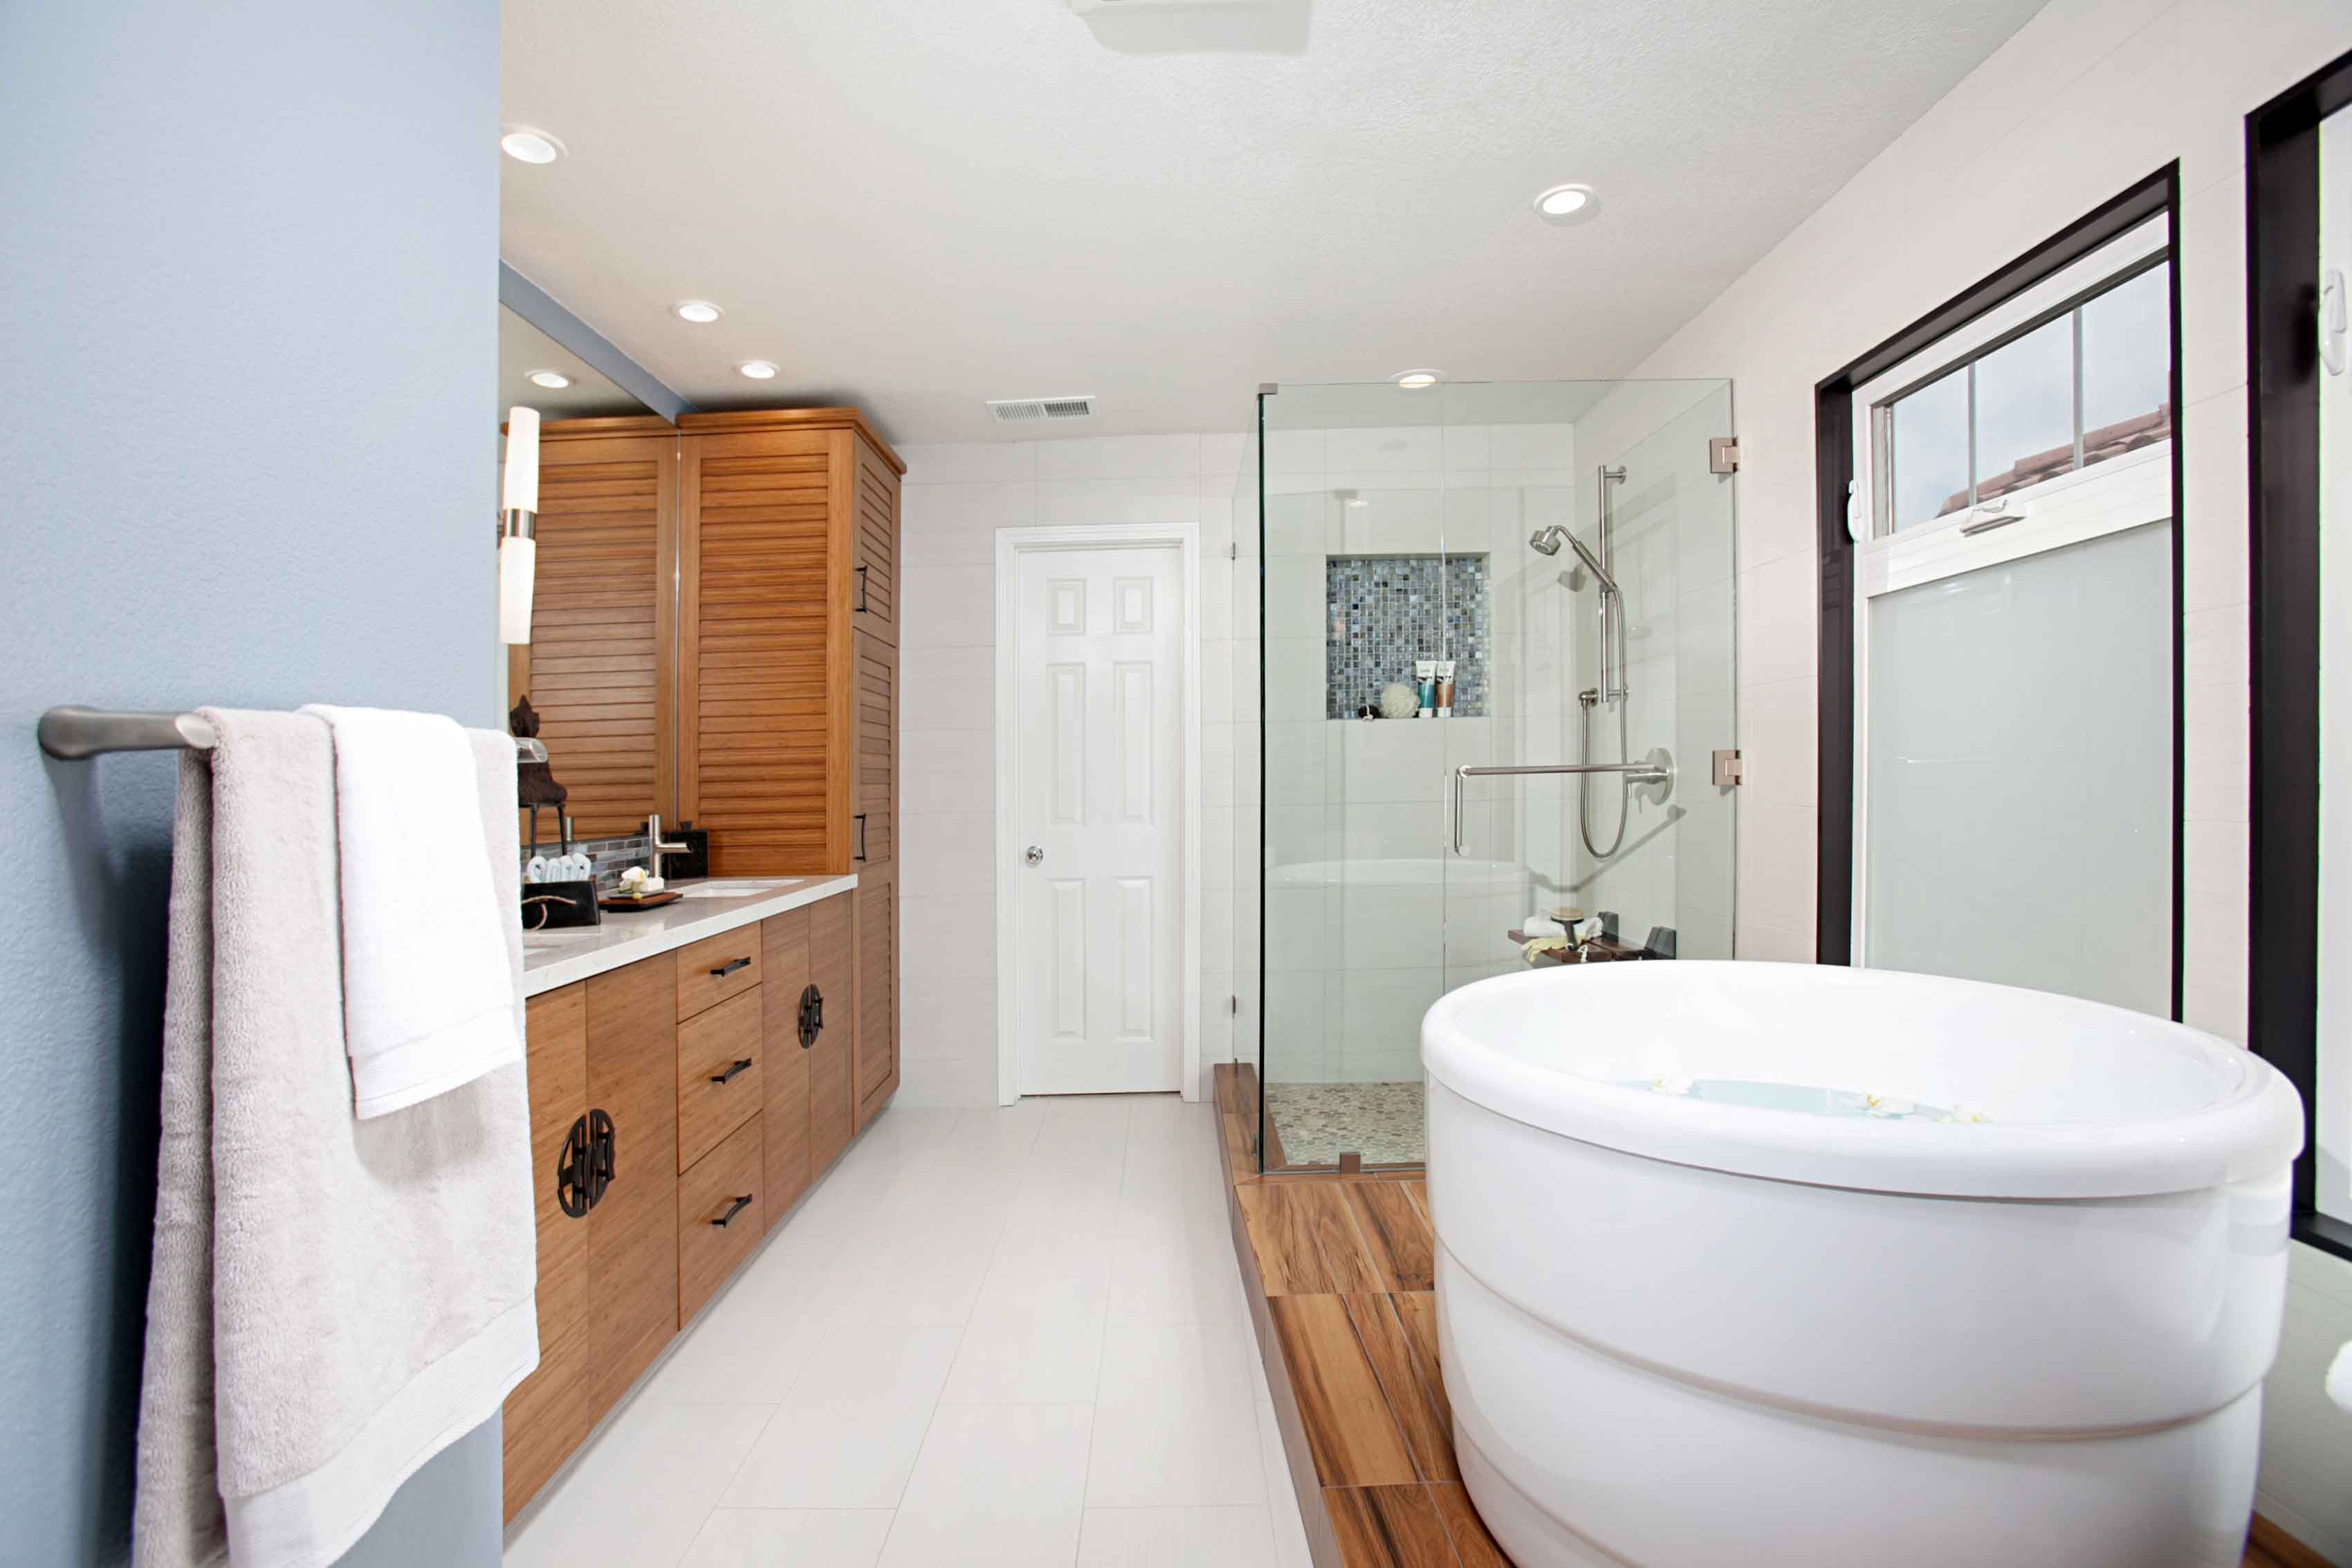 Asian Master Bathroom With White Bowl Bathtub Combo With Glass Enclosed Shower And Sleek Wood Details (Photo 16 of 16)